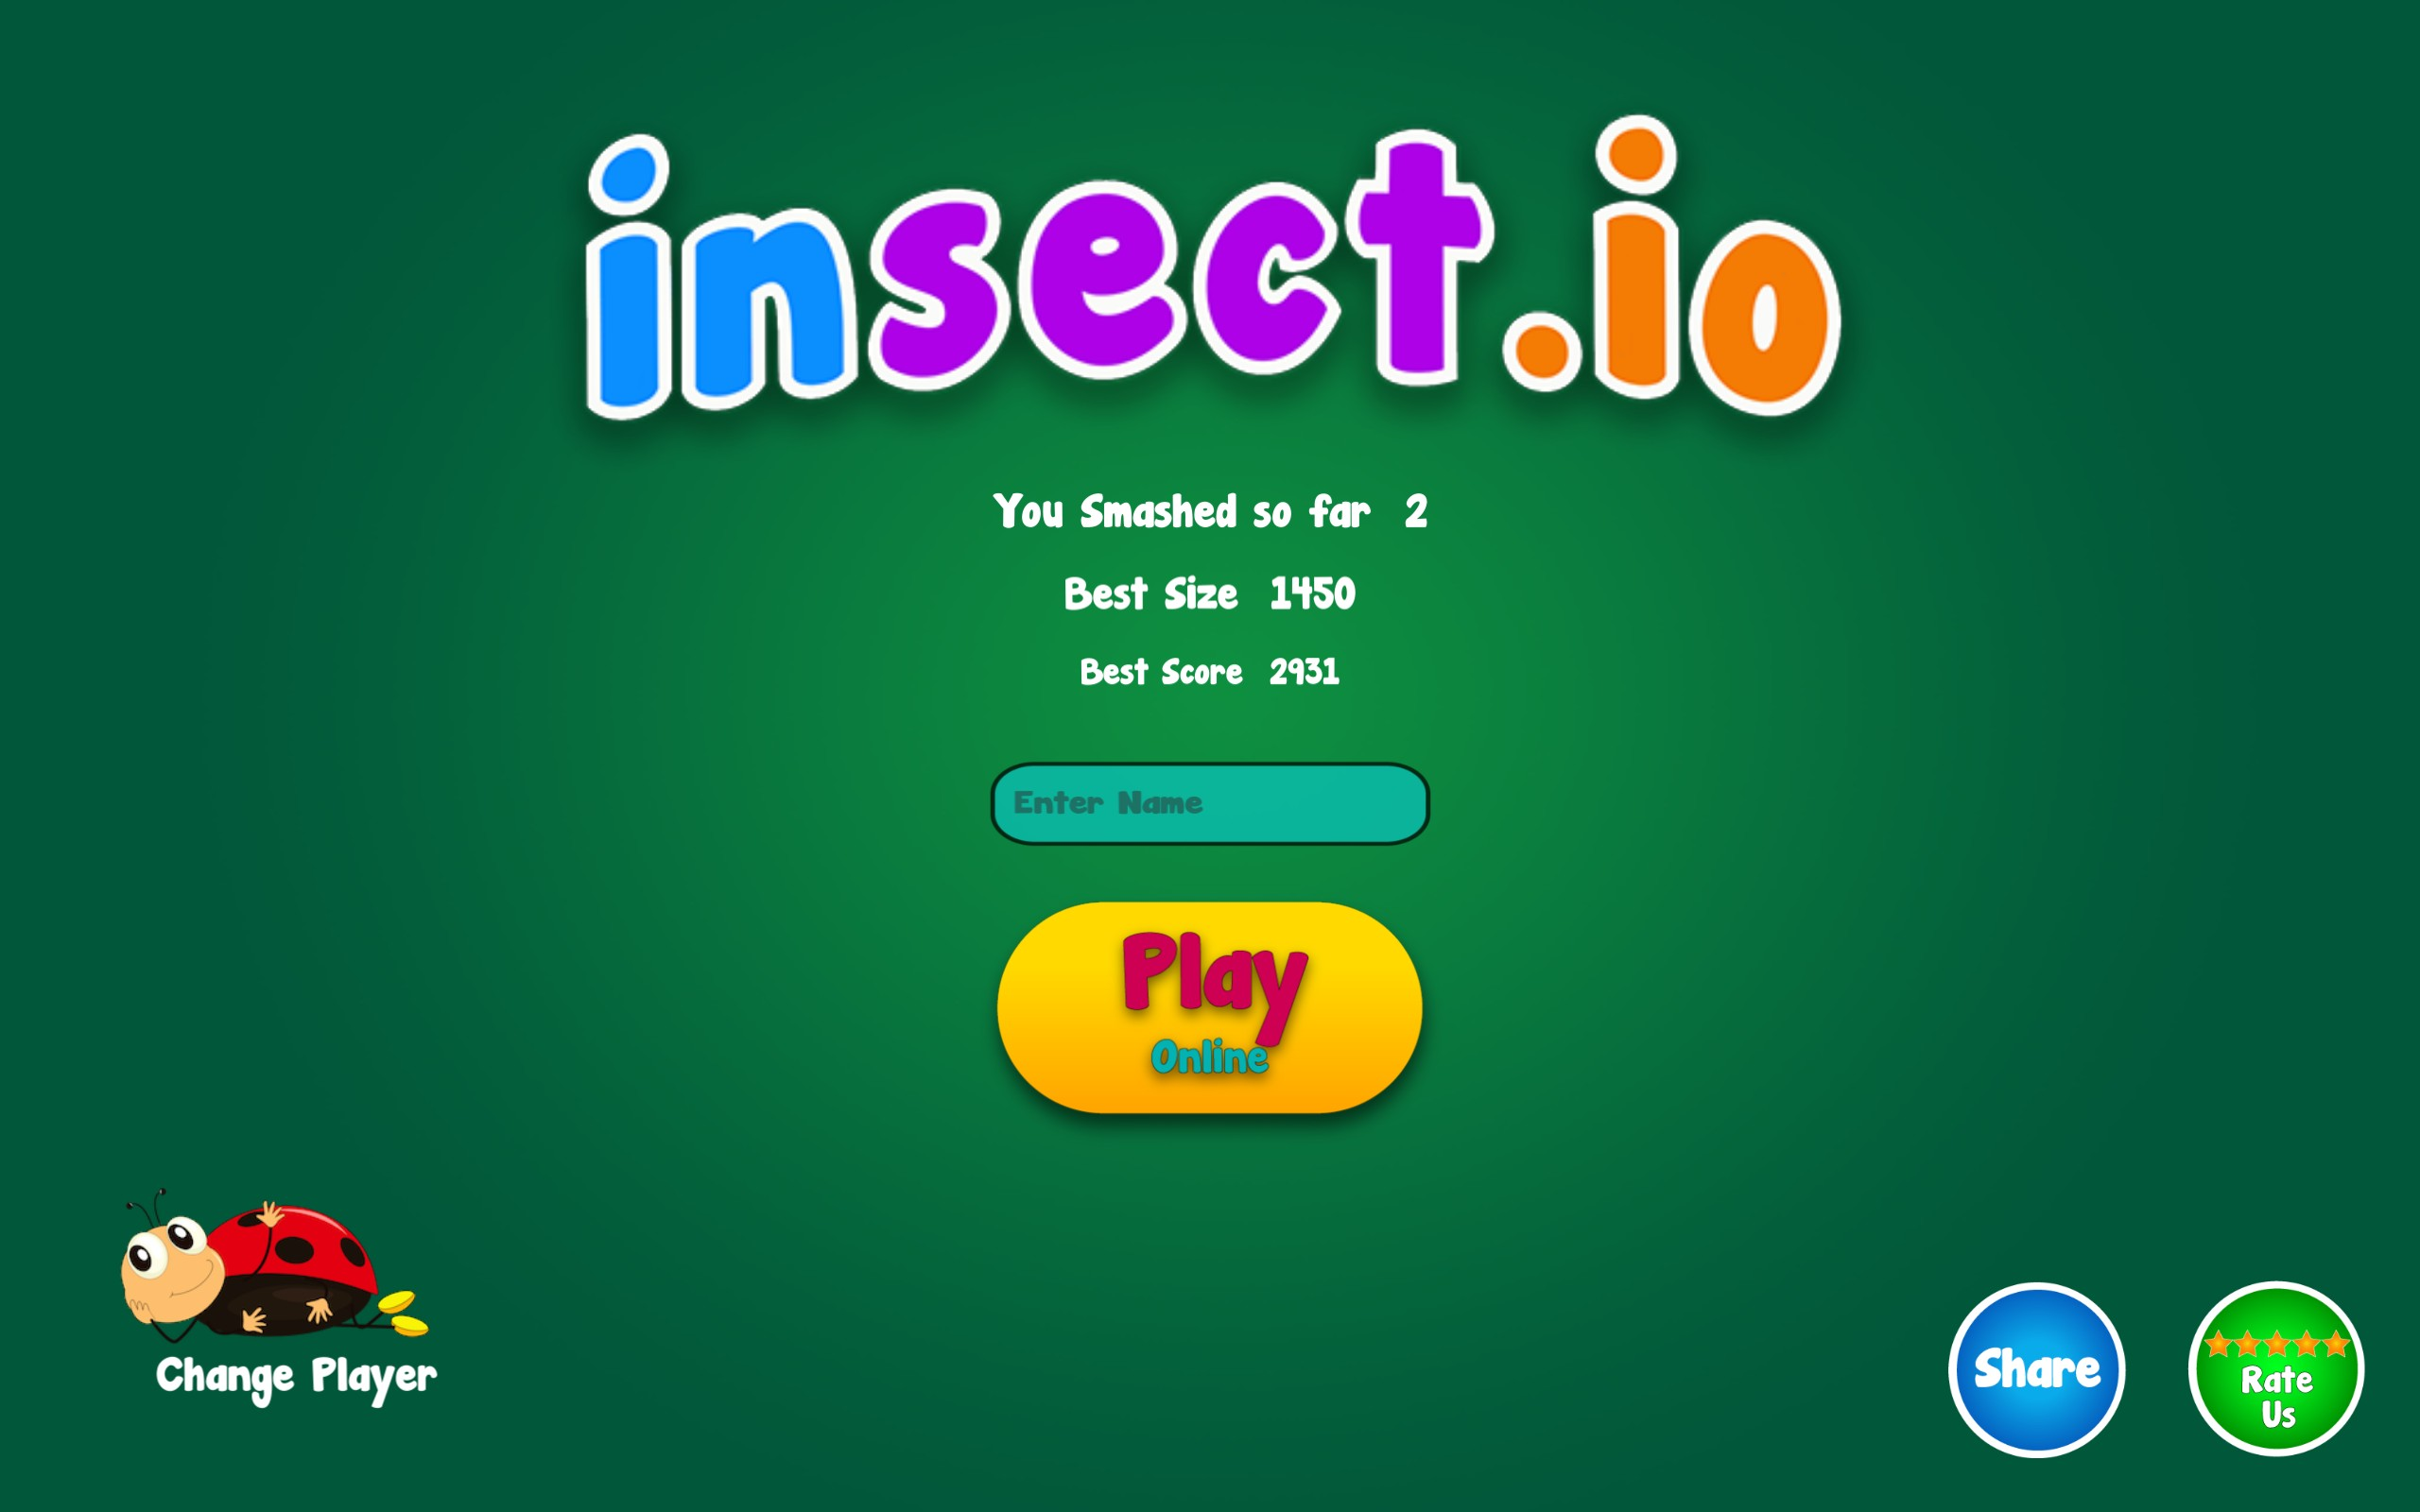 insect.io